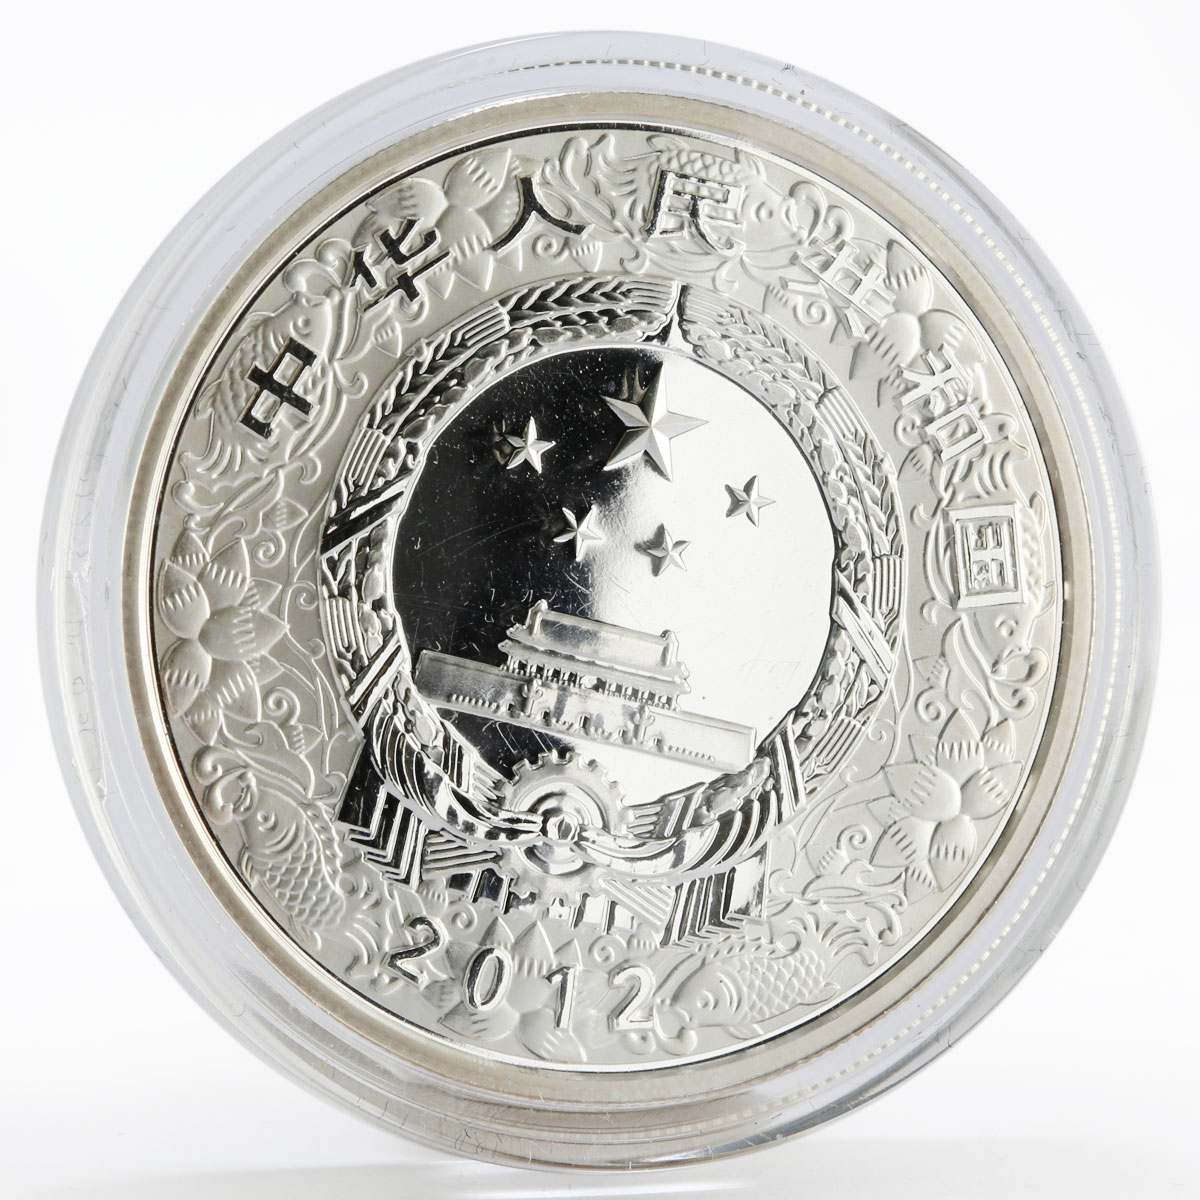 China 10 yuan Year of the Dragon Ren Chen colored proof silver coin 2012